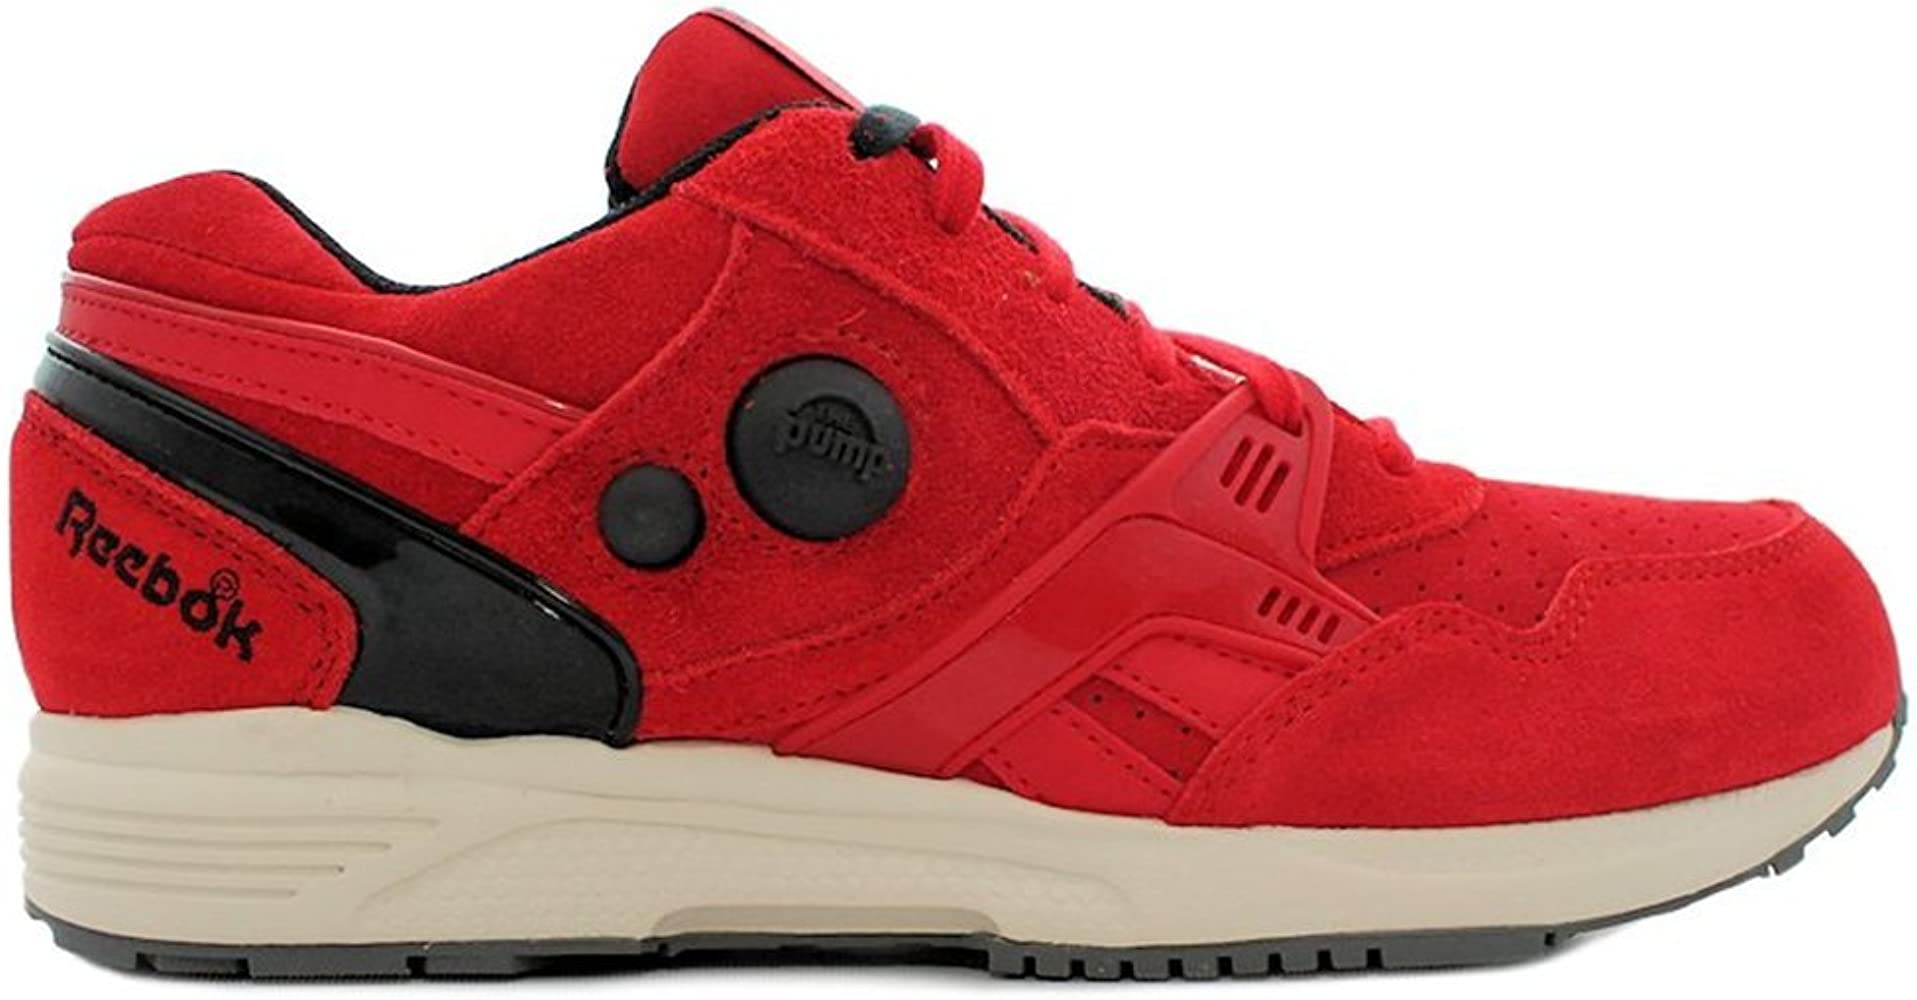 Reebok - Pump Running Dual - Color: Negro-Rojo - Size: 42.0: Amazon.es: Zapatos y complementos